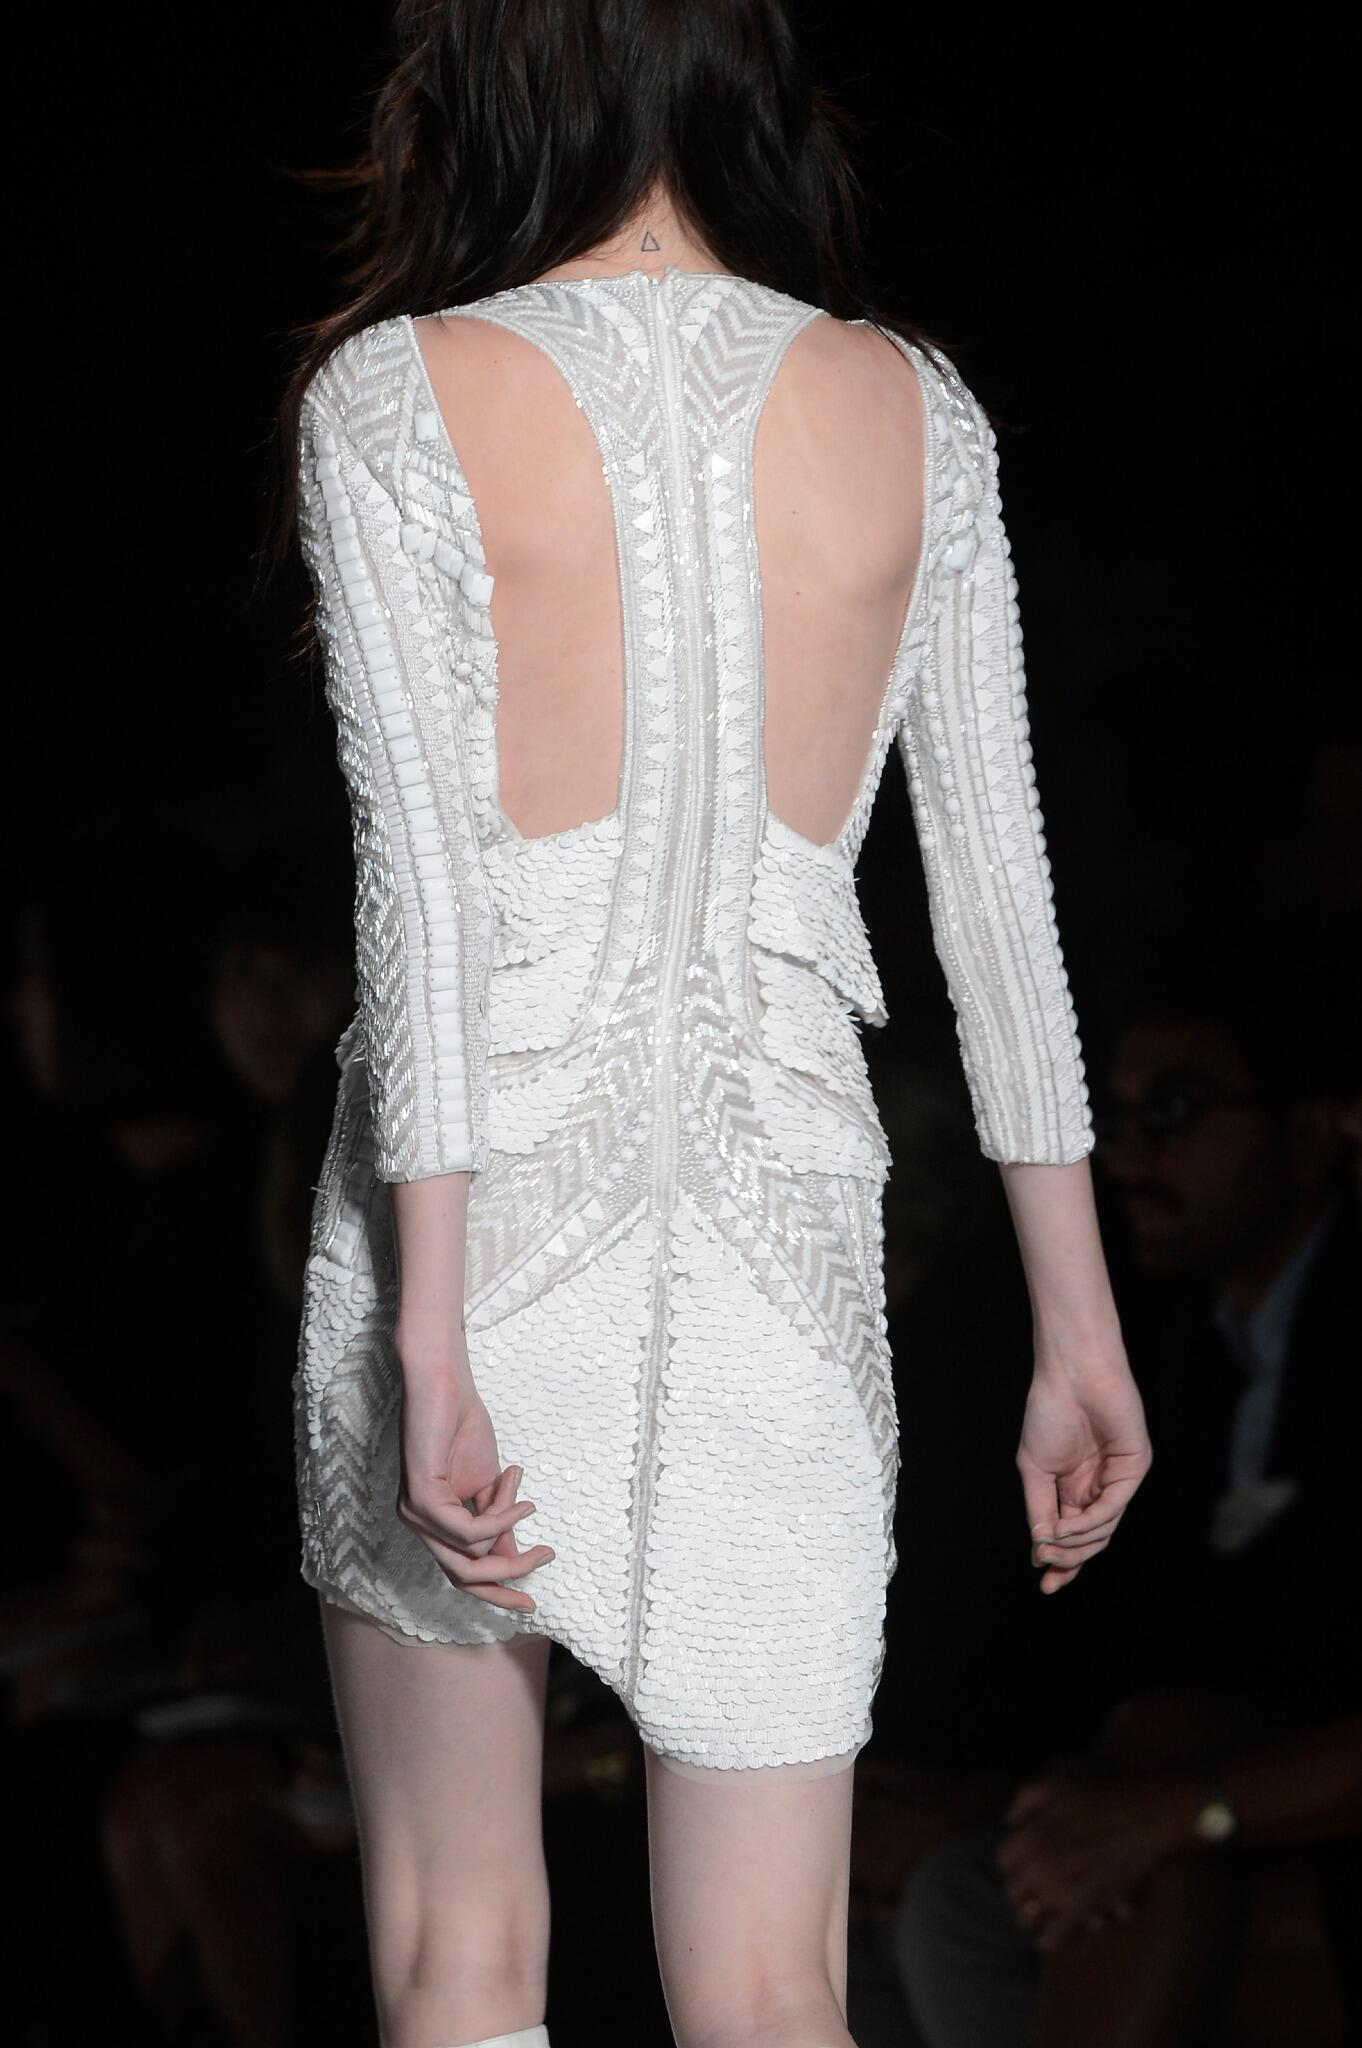 White embellished dress from the #JustCavalli SS 2013 fashion show! http://t.co/Wvq8ngUuz9